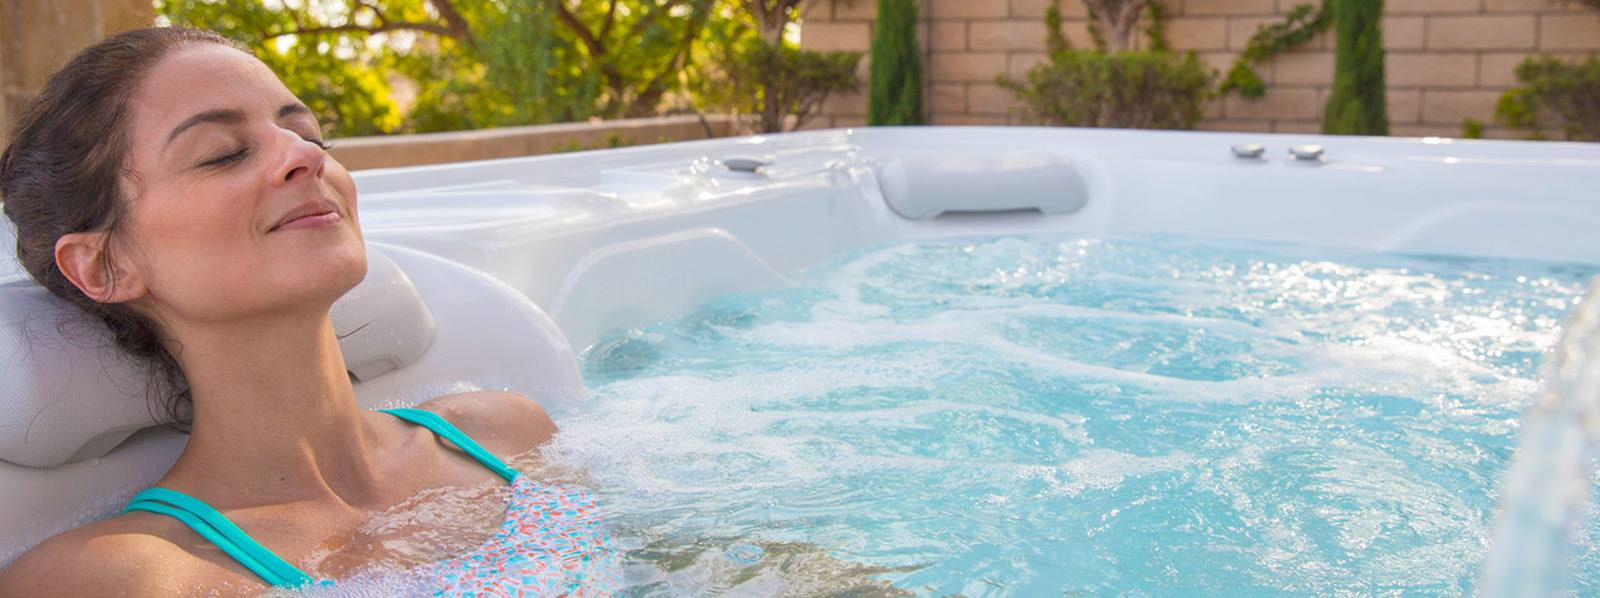 Soak Your Way to a Healthy Heart in a Spa, Reconditioned Hot Tubs Near Me St. Charles